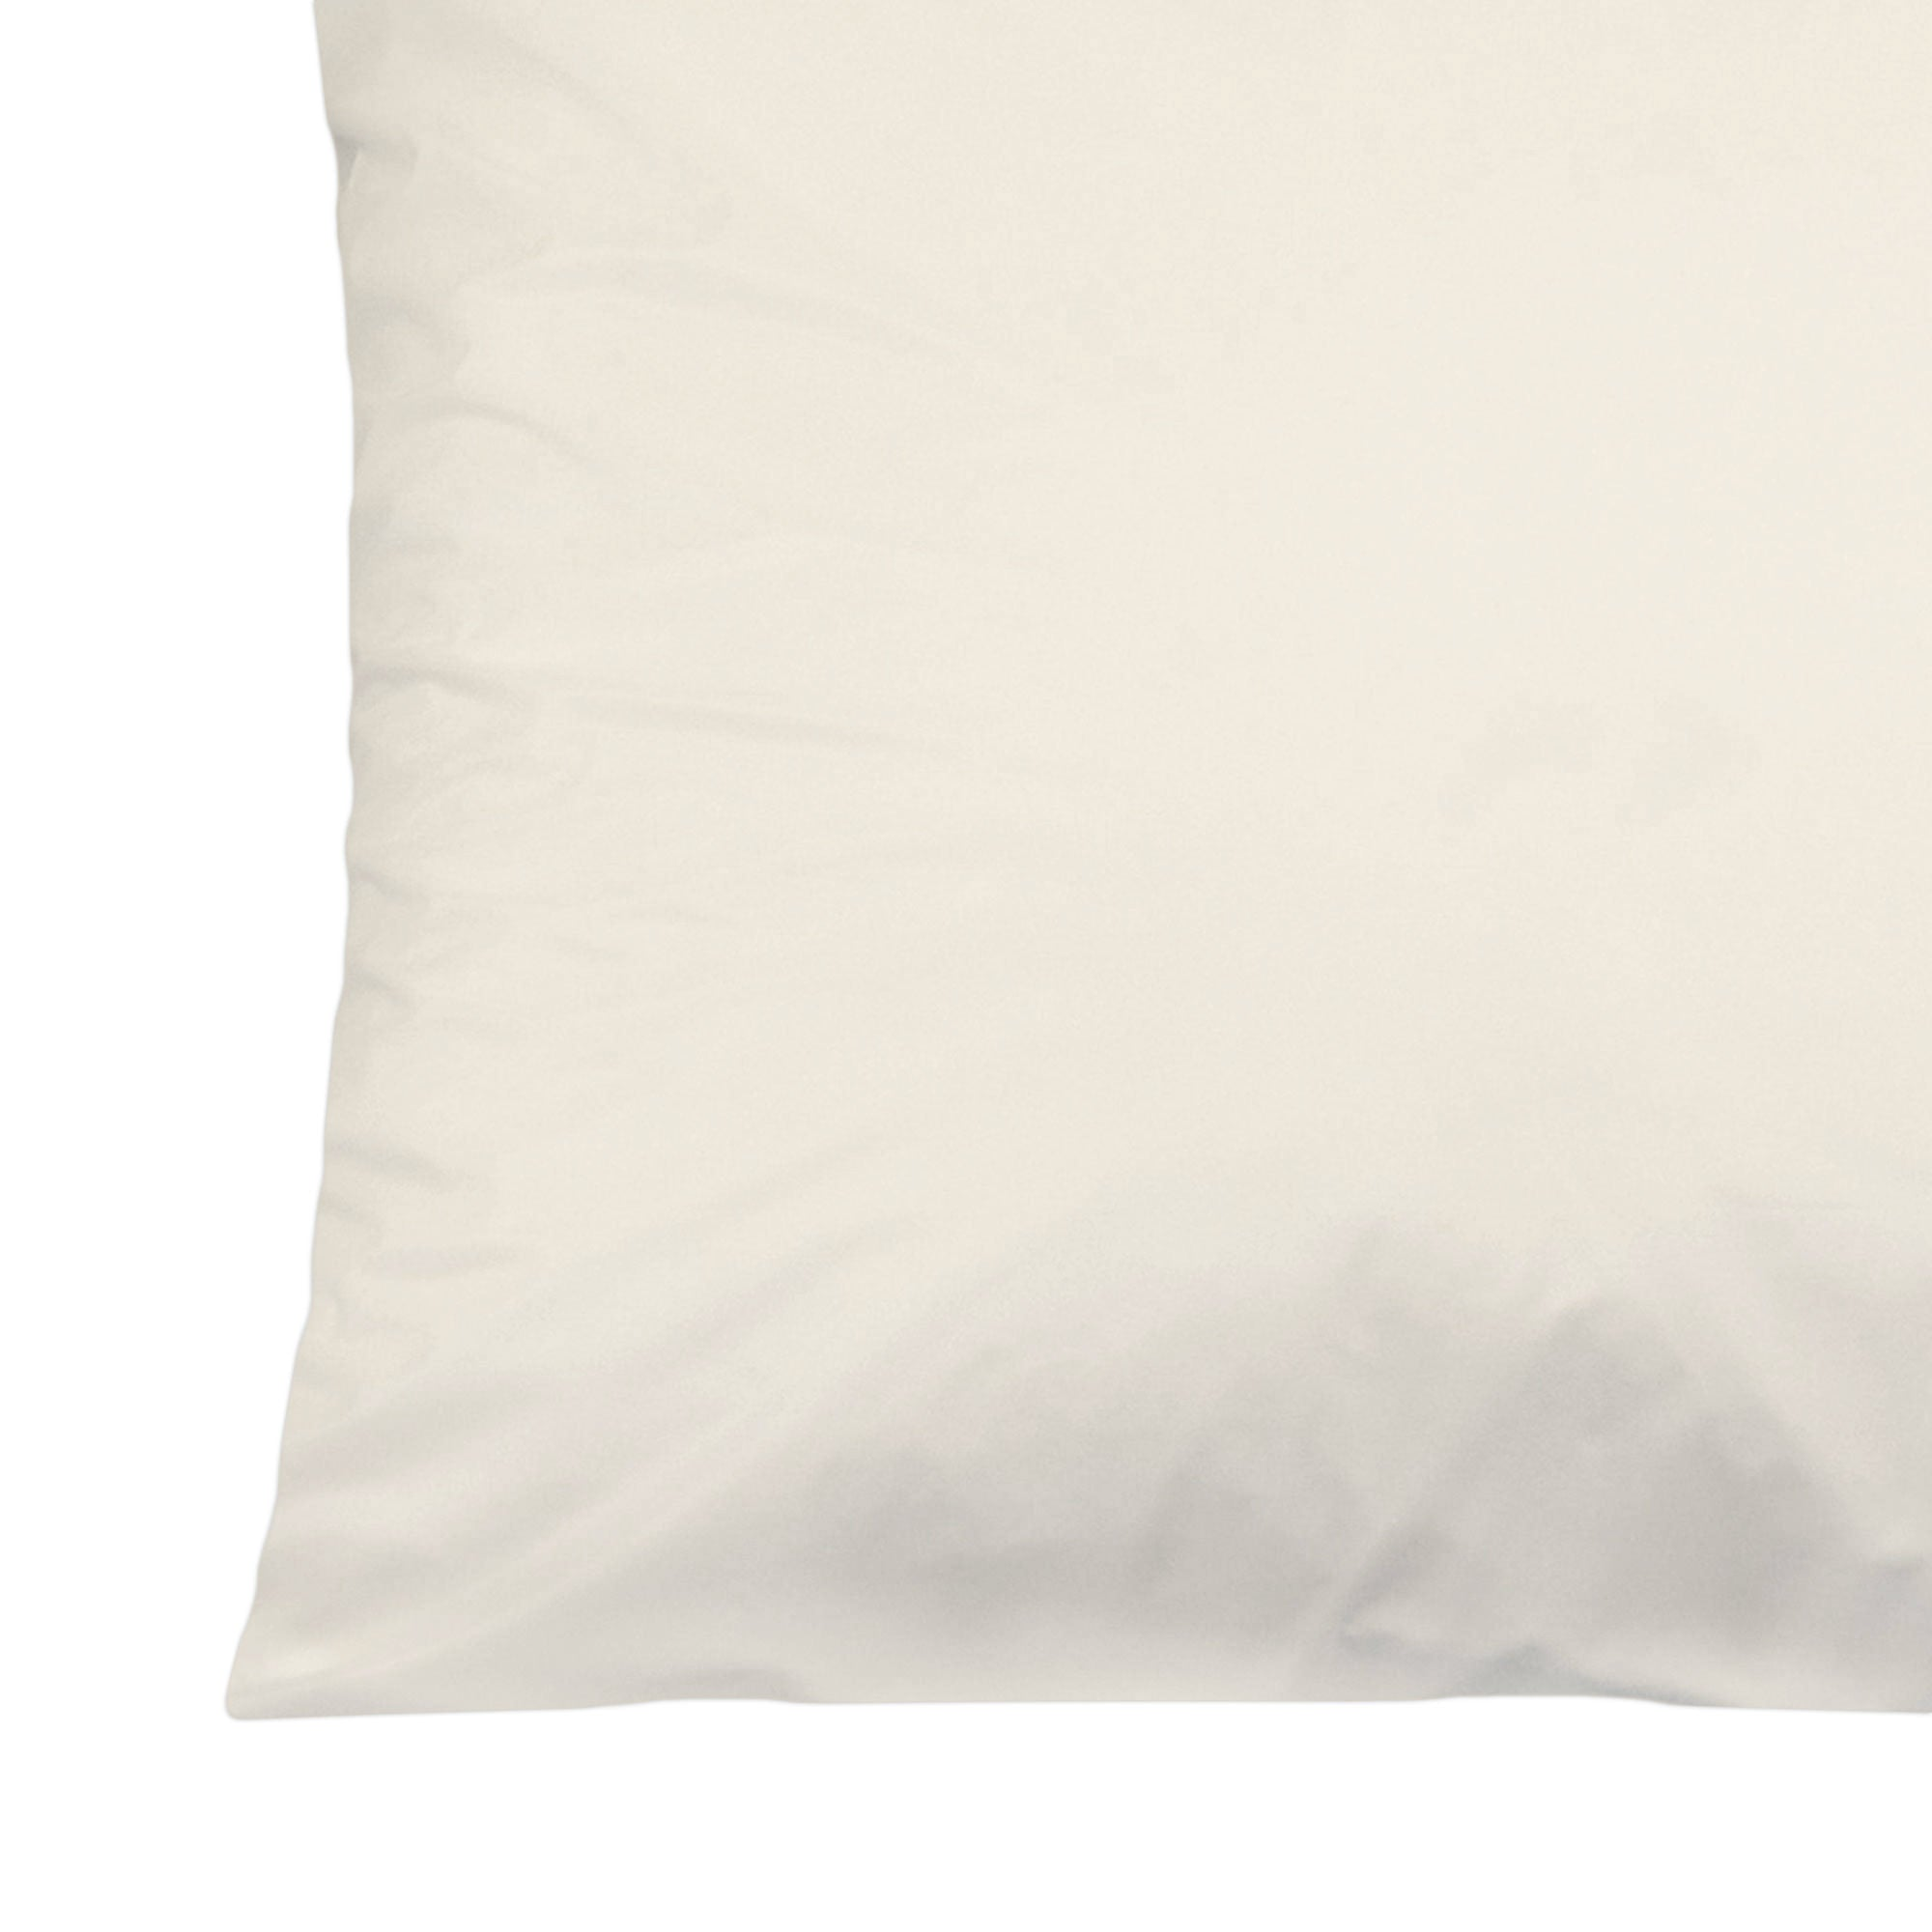 Organic Breathable Waterproof Pillow Protector Just Nebulizers